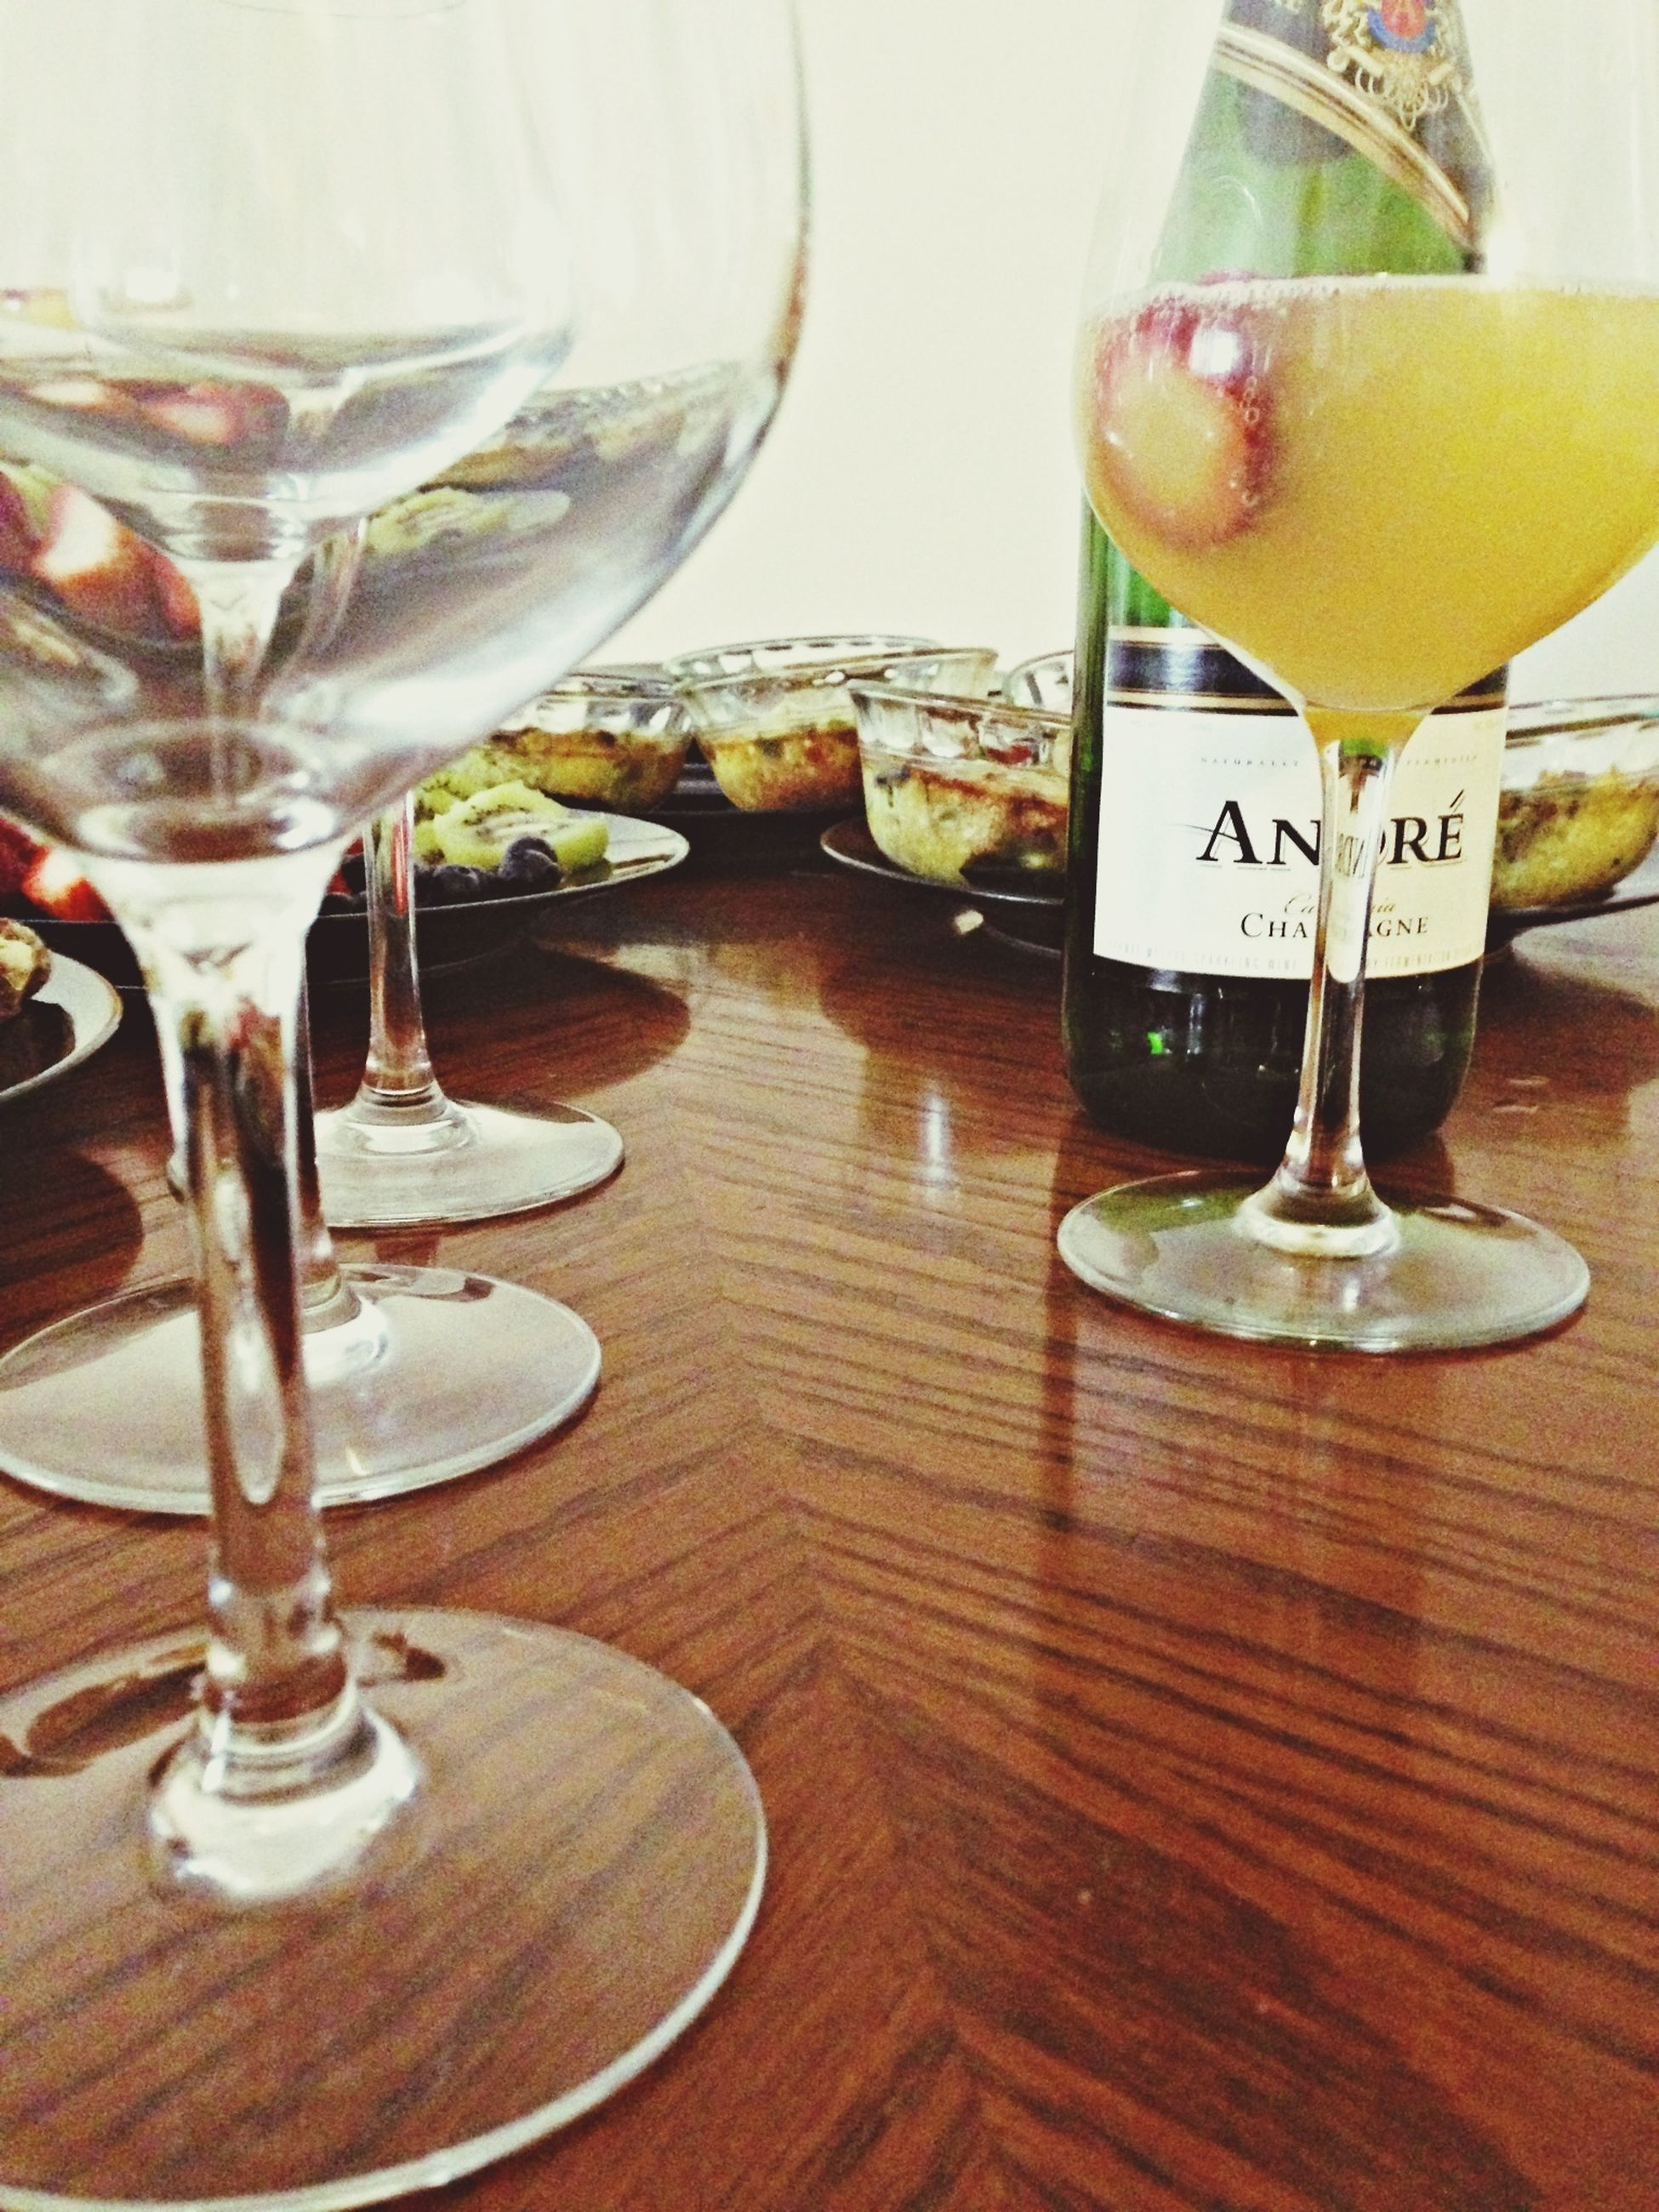 indoors, drink, table, food and drink, drinking glass, refreshment, glass - material, freshness, still life, wineglass, transparent, alcohol, close-up, restaurant, glass, vase, wine, bottle, jar, home interior